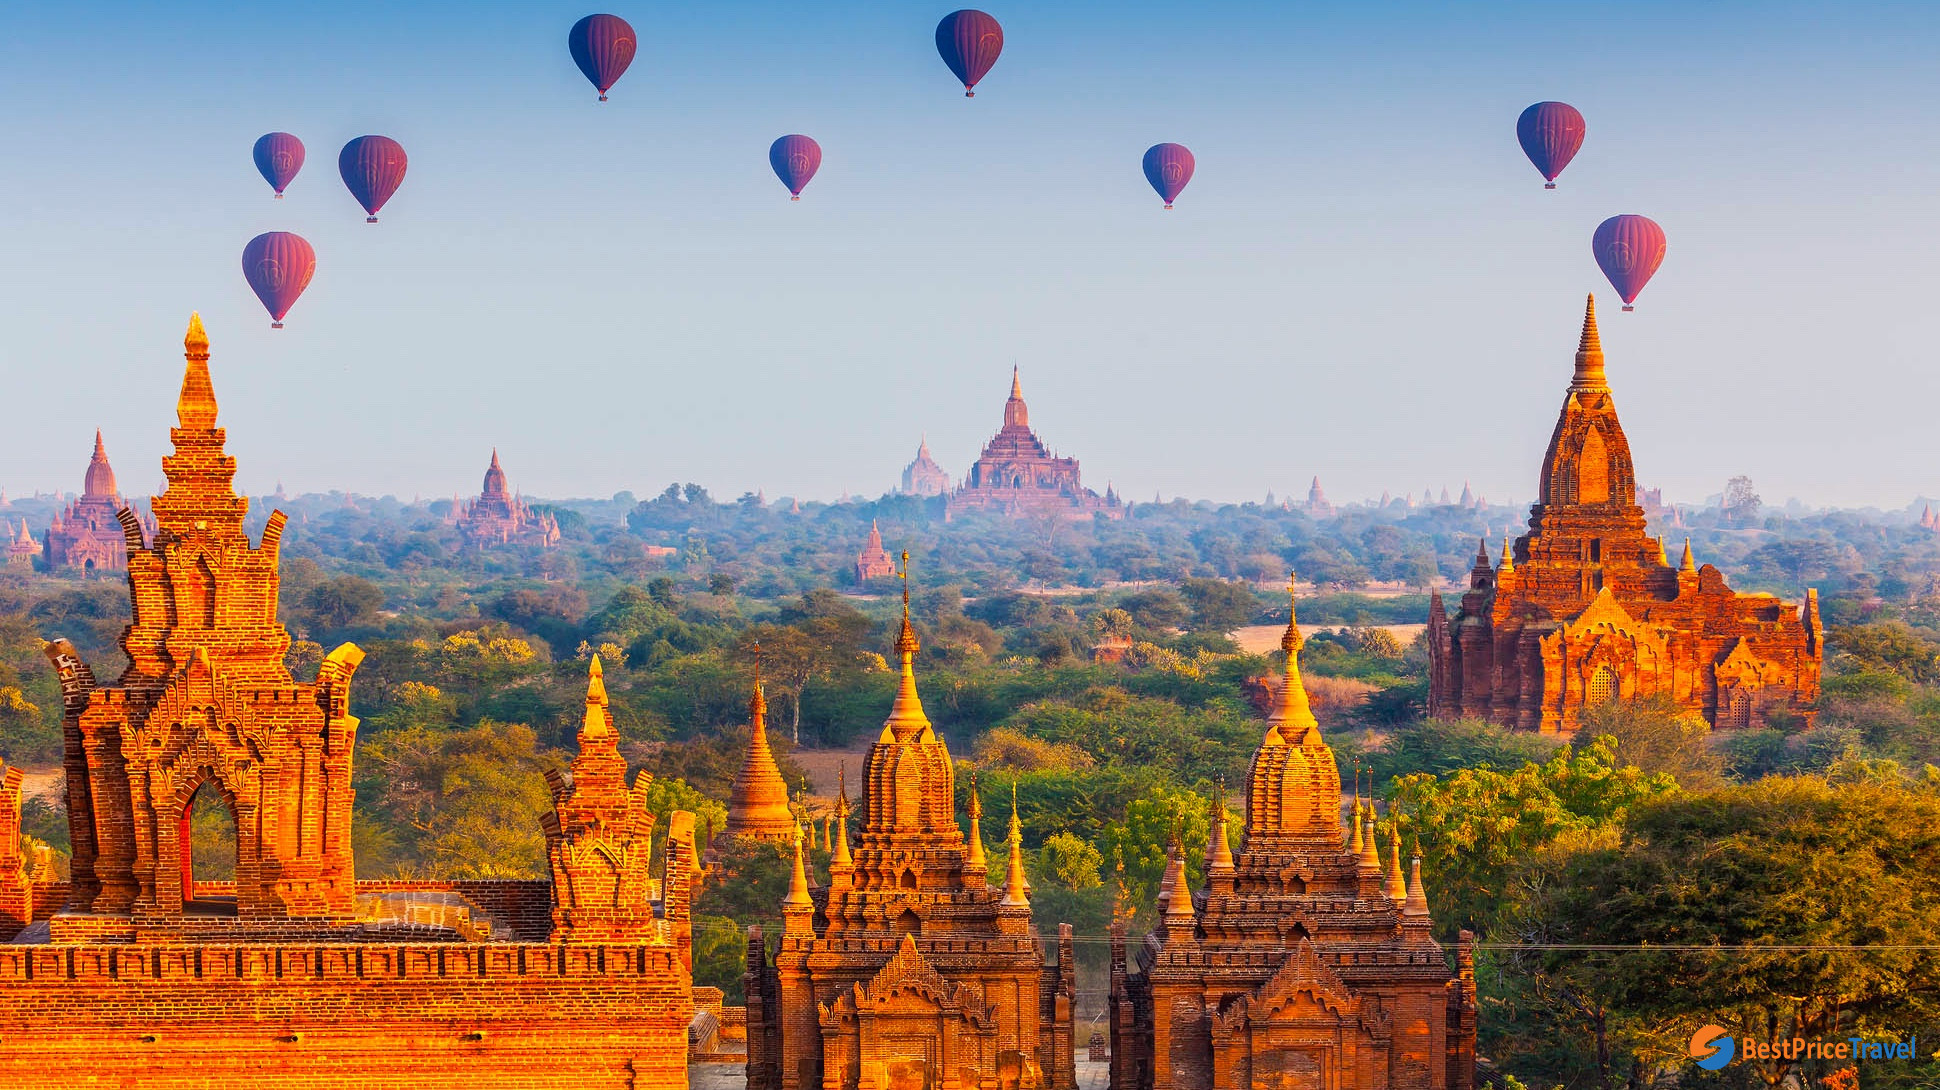 myanmar is one of the safest countries during coronavirus outbreak